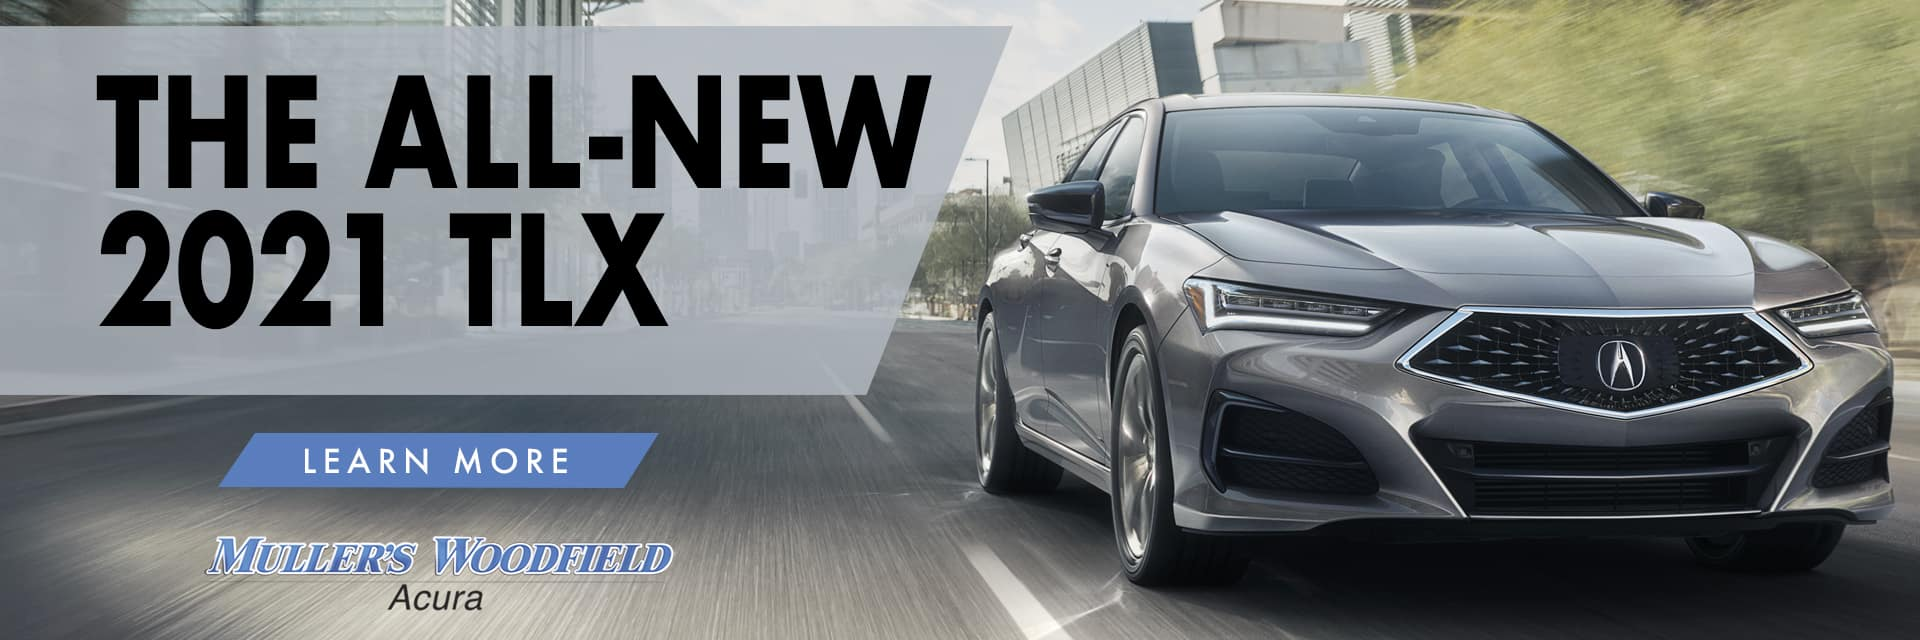 TLX homepage Banner